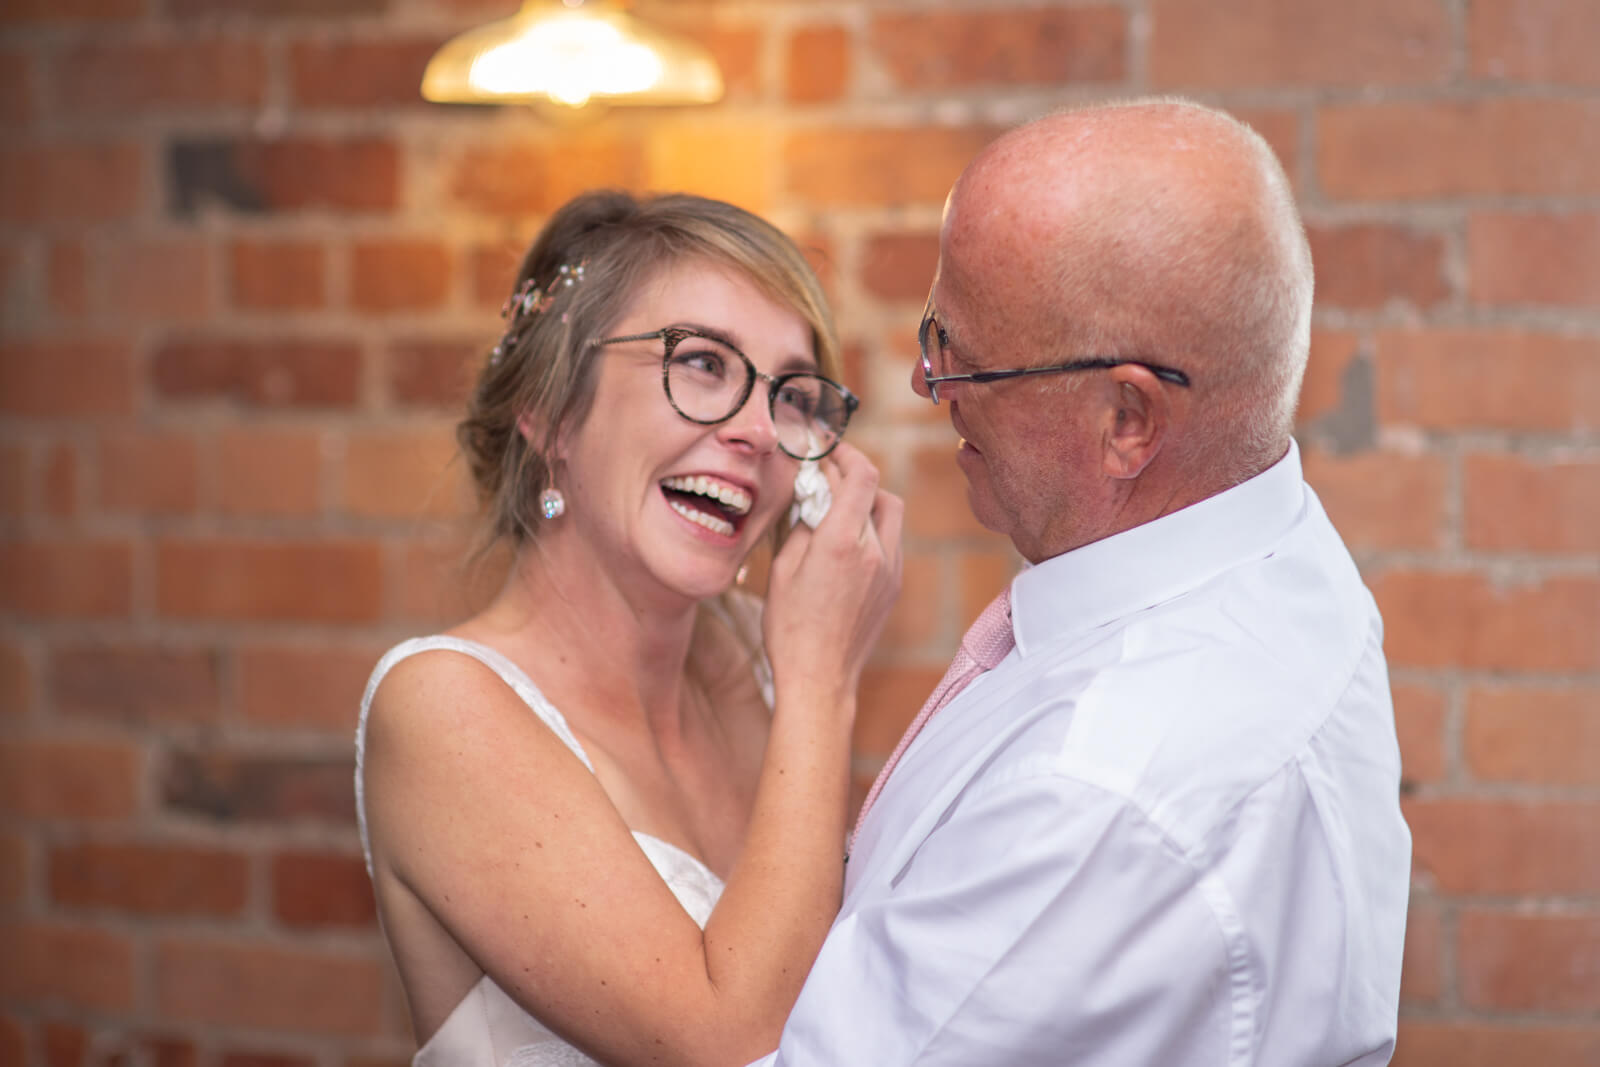 Bride wipes tears away and smiles while she dances with her dad